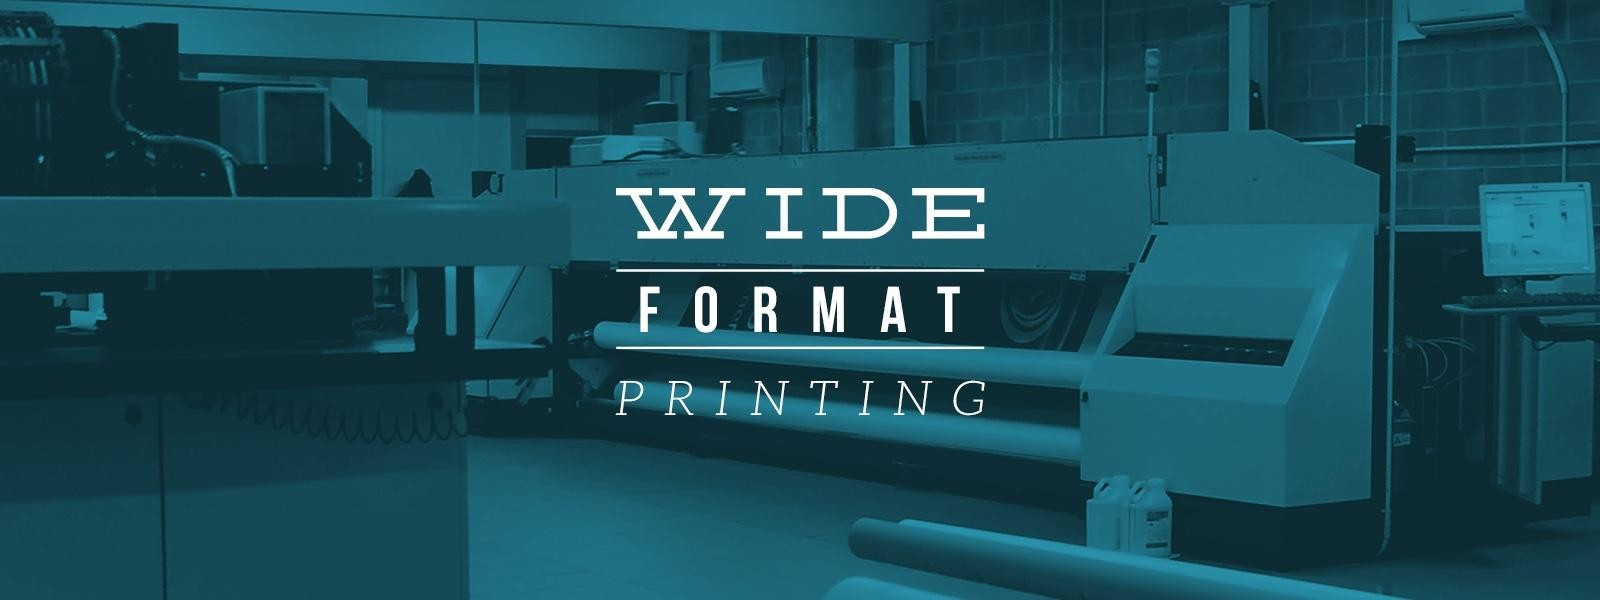 Commercial Offset  Digital  Wide Format Printer?  SE QLD